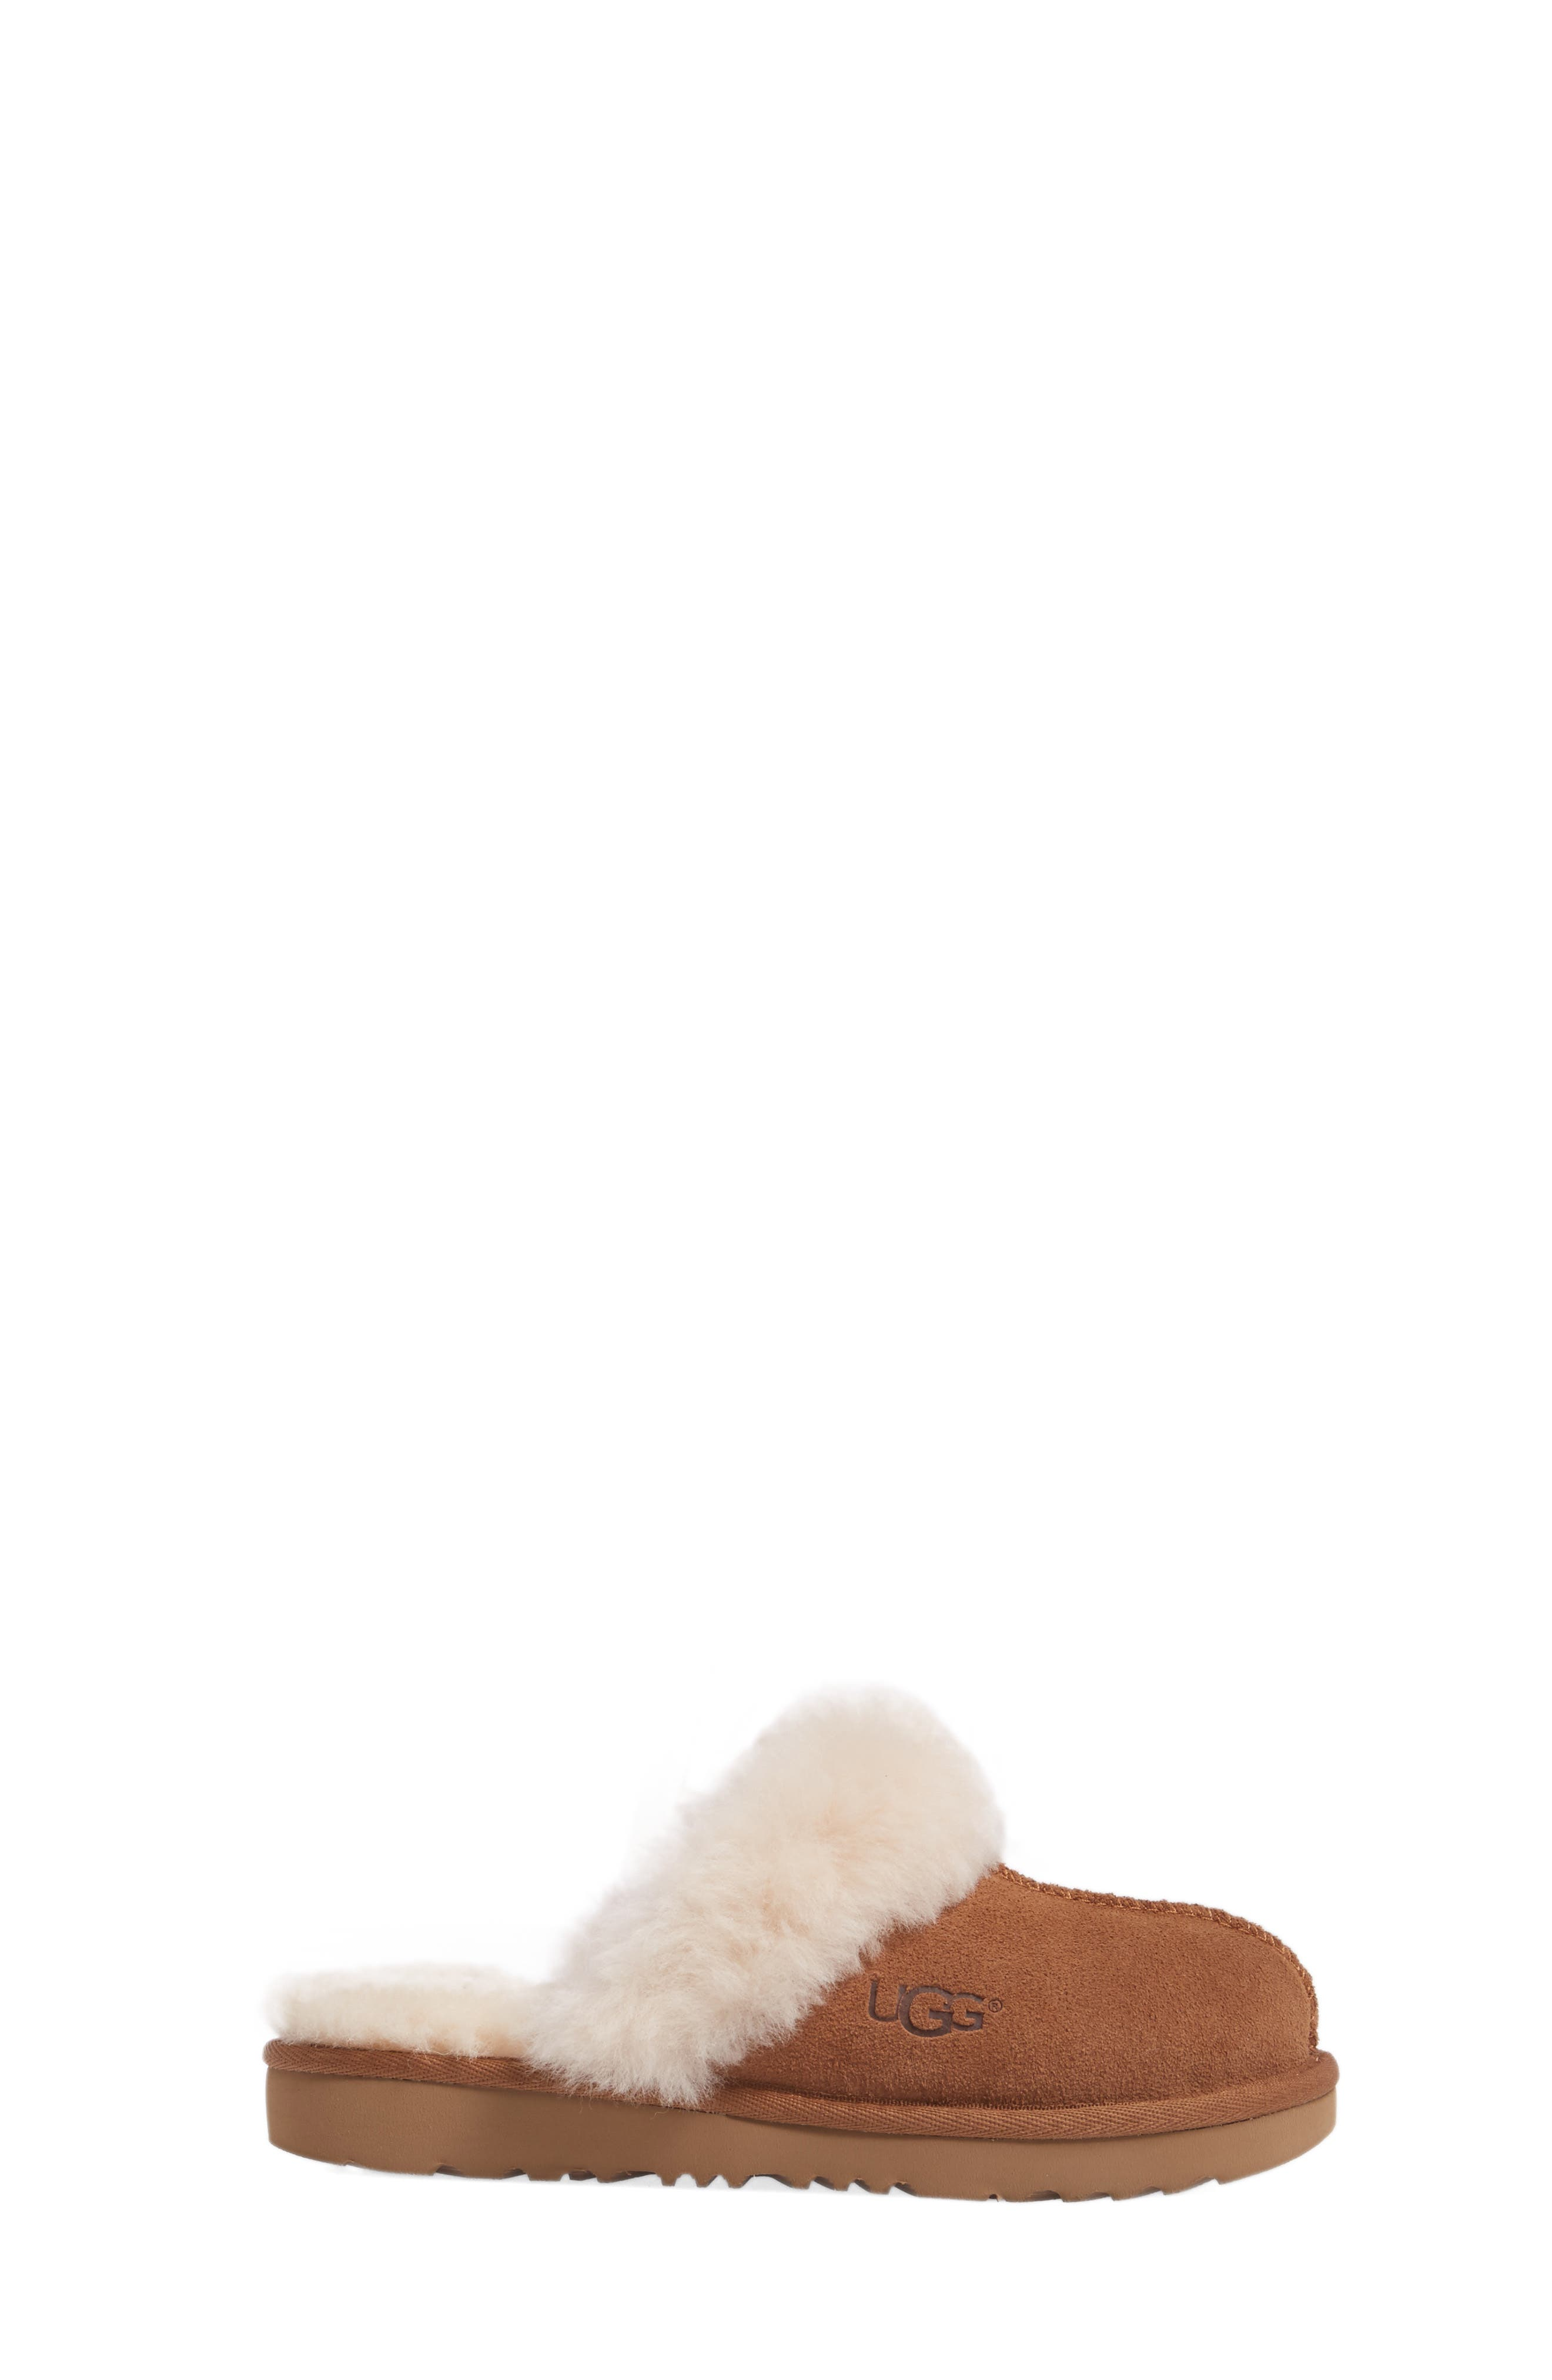 UGG<SUP>®</SUP>, Cozy II Scuff Slipper, Alternate thumbnail 3, color, CHESTNUT